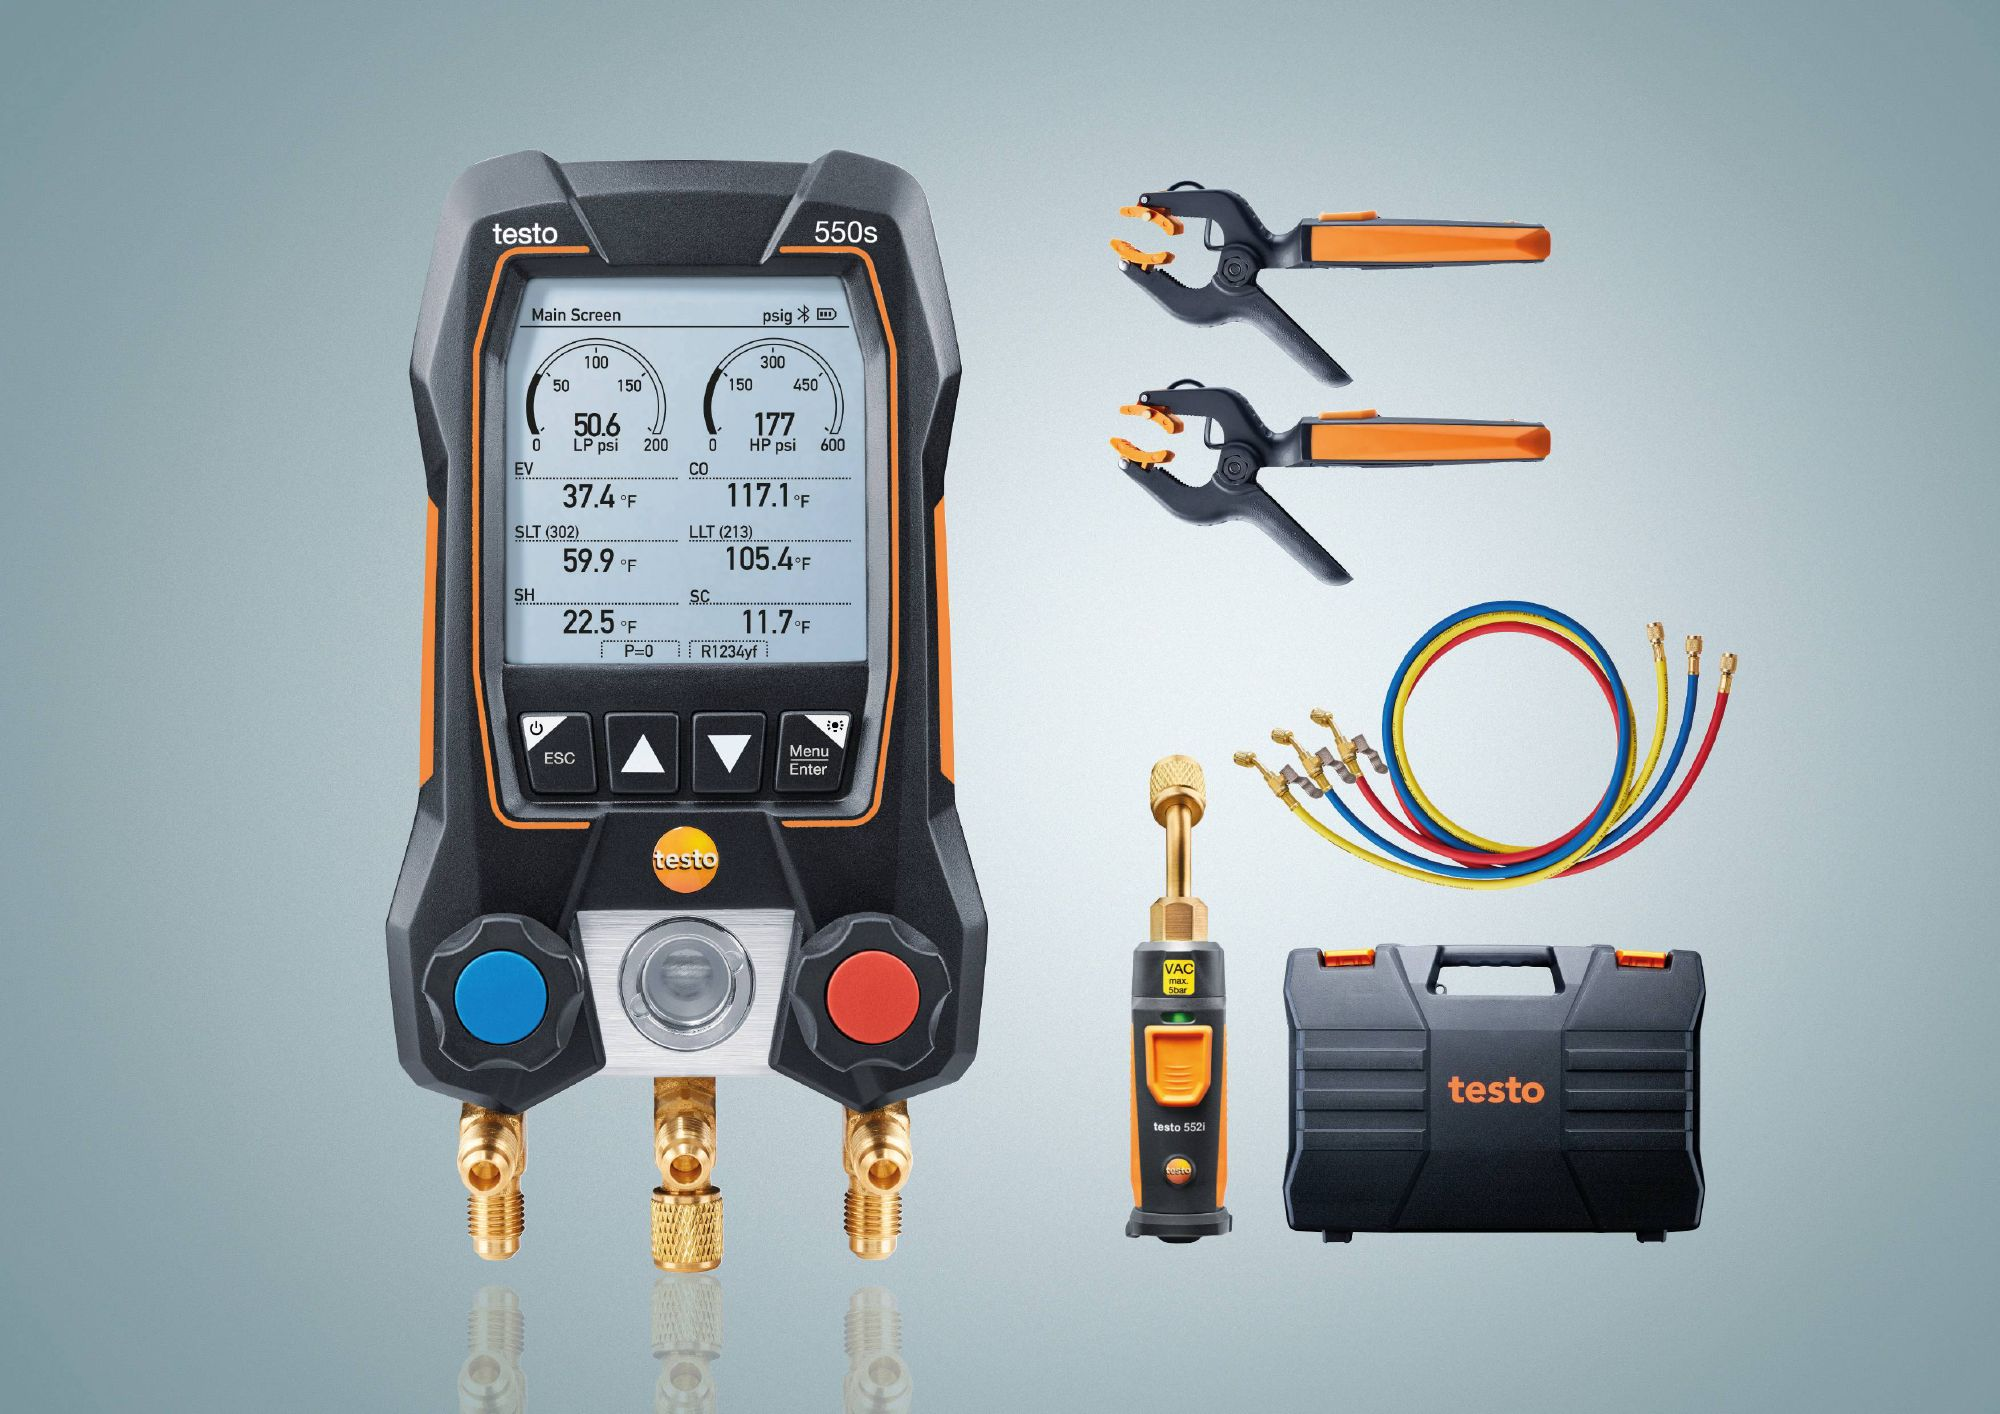 testo 550s Smart Vacuum Kit with hoses